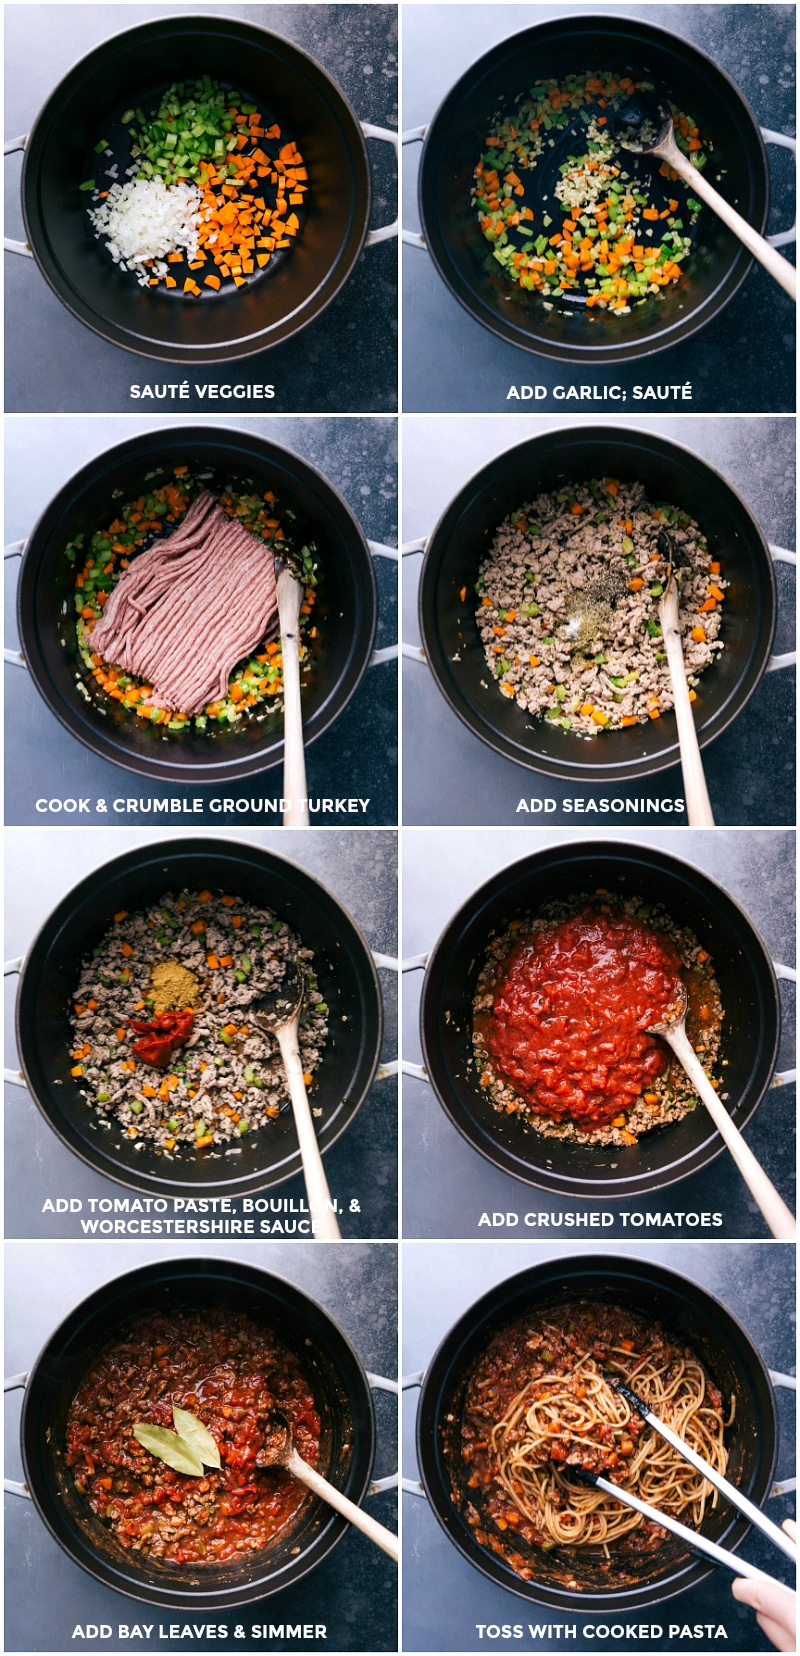 Process shots for making Turkey Bolognese: sauté veggies; add garlic; cook and crumble ground turkey; add seasoning; add tomato paste, bouillon and Worcestershire sauce; add crushed tomatoes; add bay leaves and simmer; toss with cooked pasta.